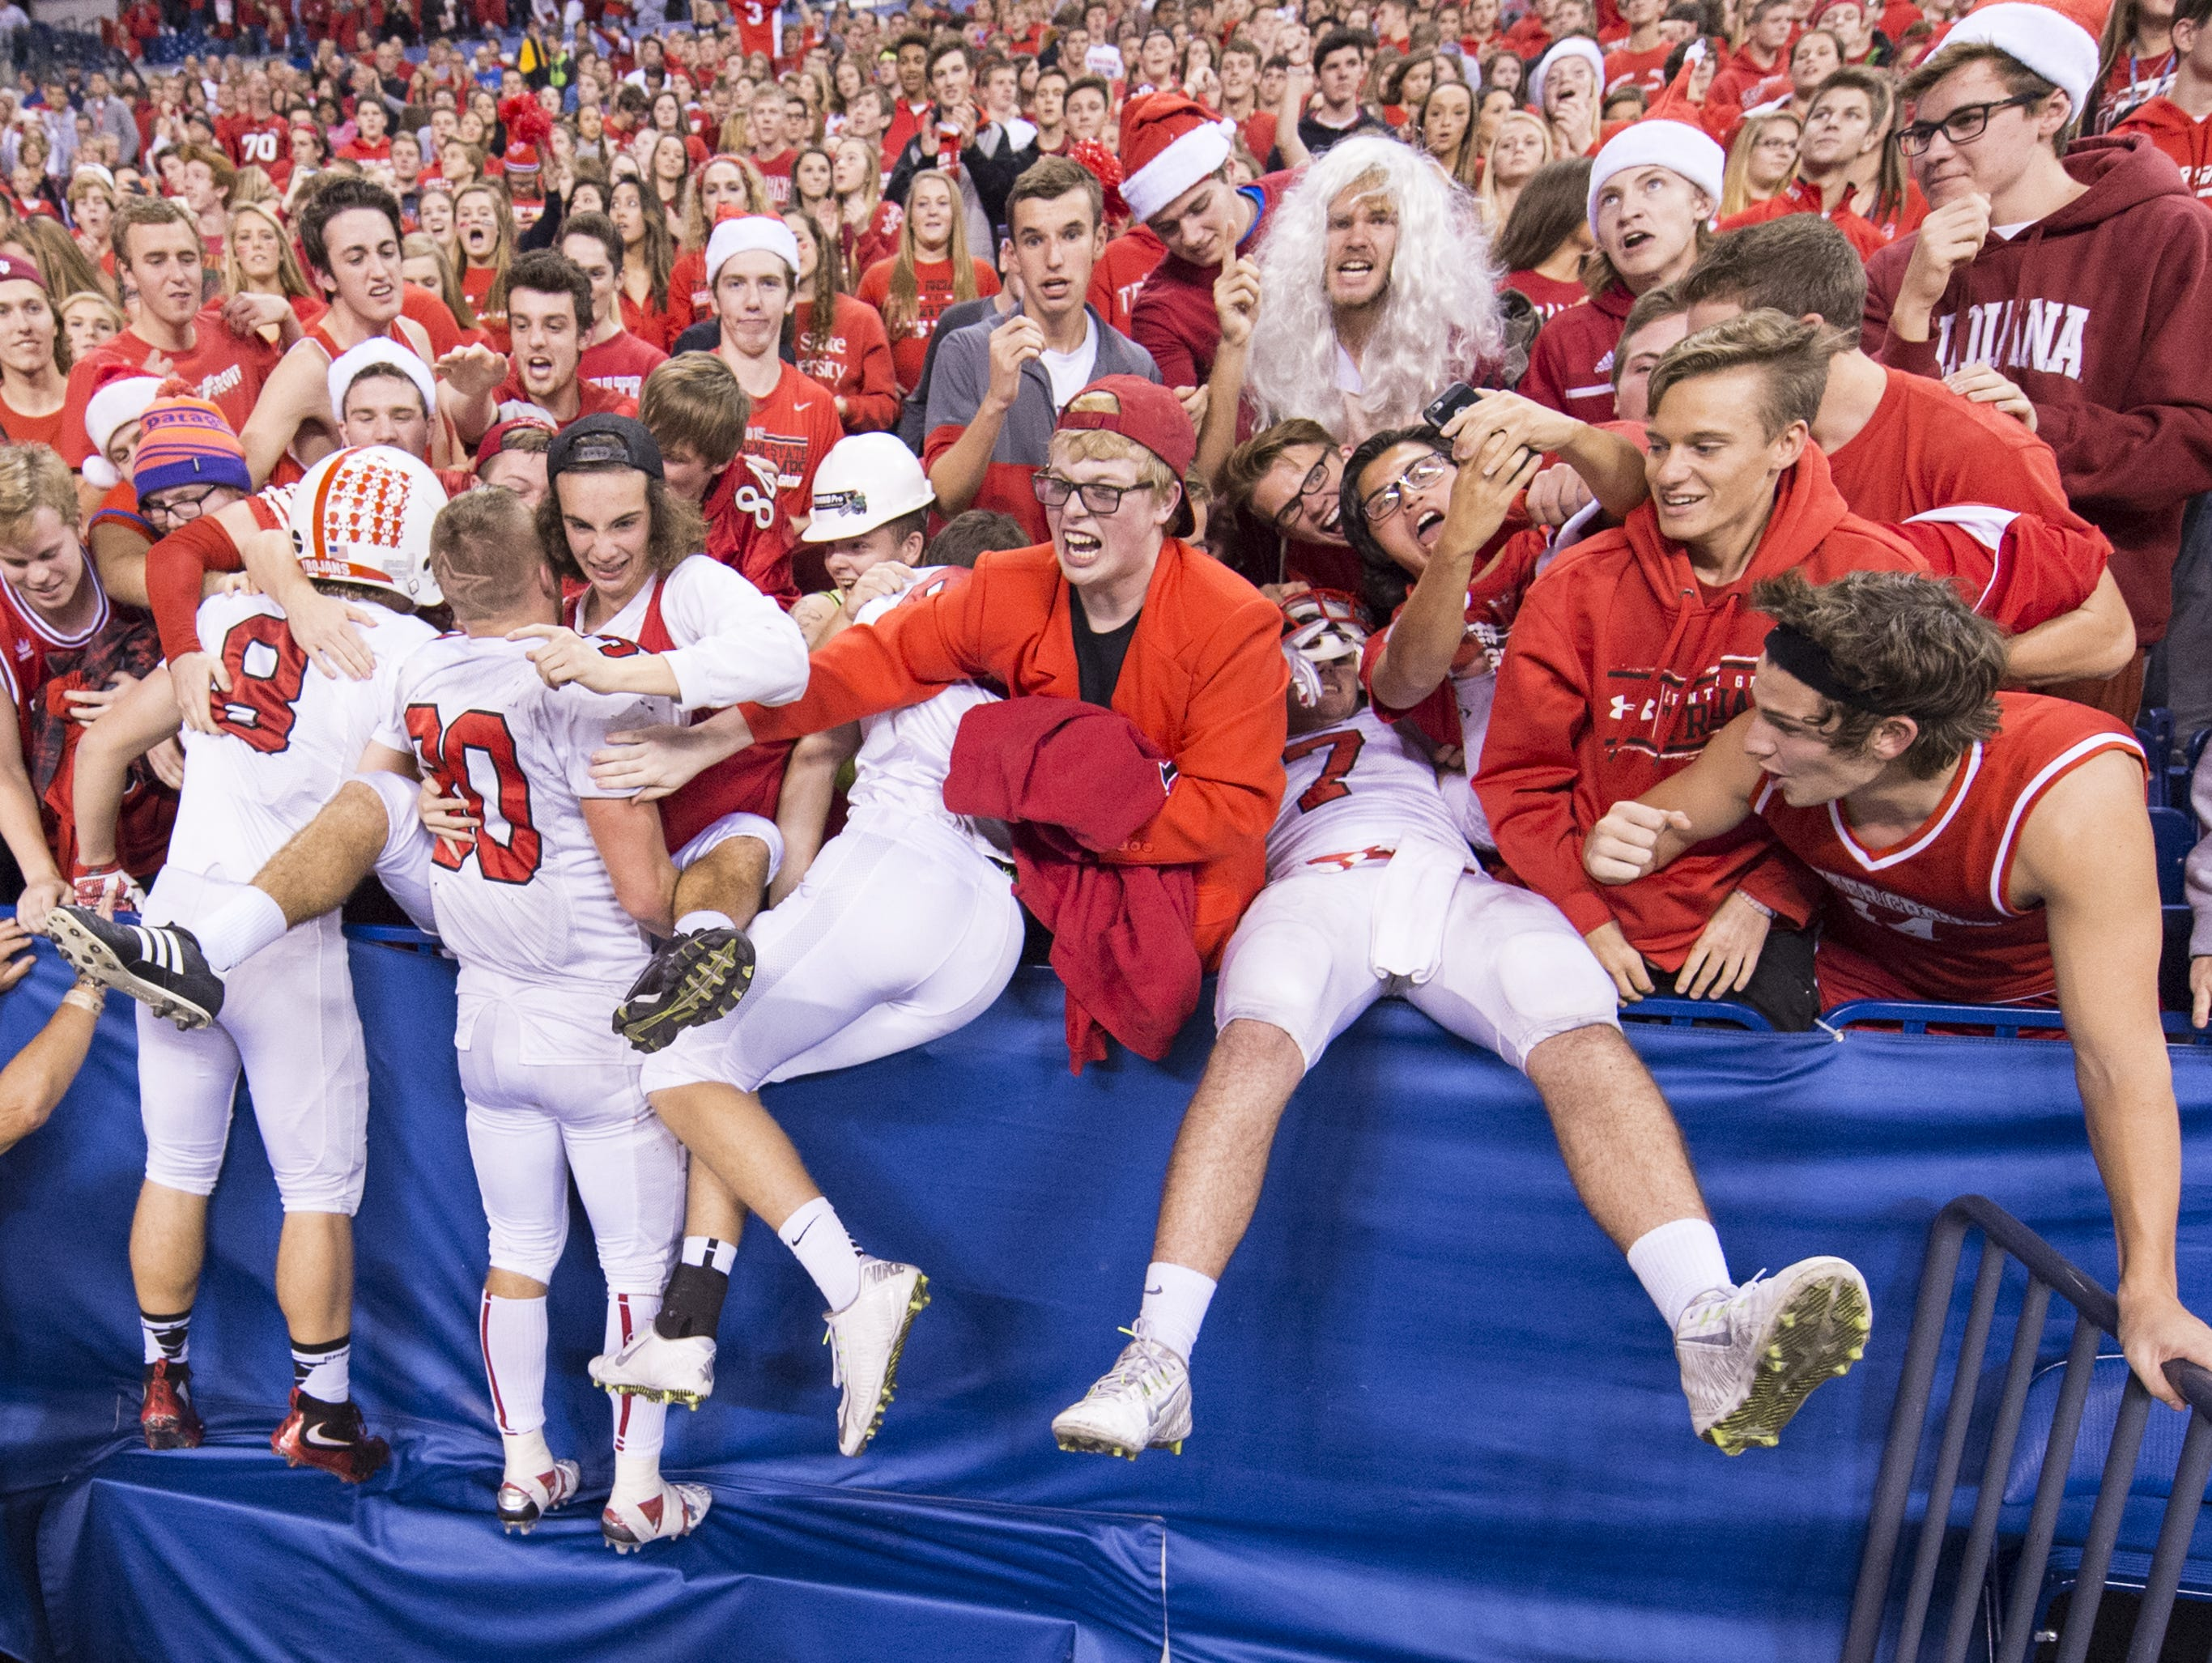 Center Grove players fly into the stands to celebrate winning the IHSAA Class 6A State Championship game with their fans, Saturday, Nov. 28, 2015, at Lucas Oil Stadium in Indianapolis. Center Grove won 28-16, to complete an undefeated season.